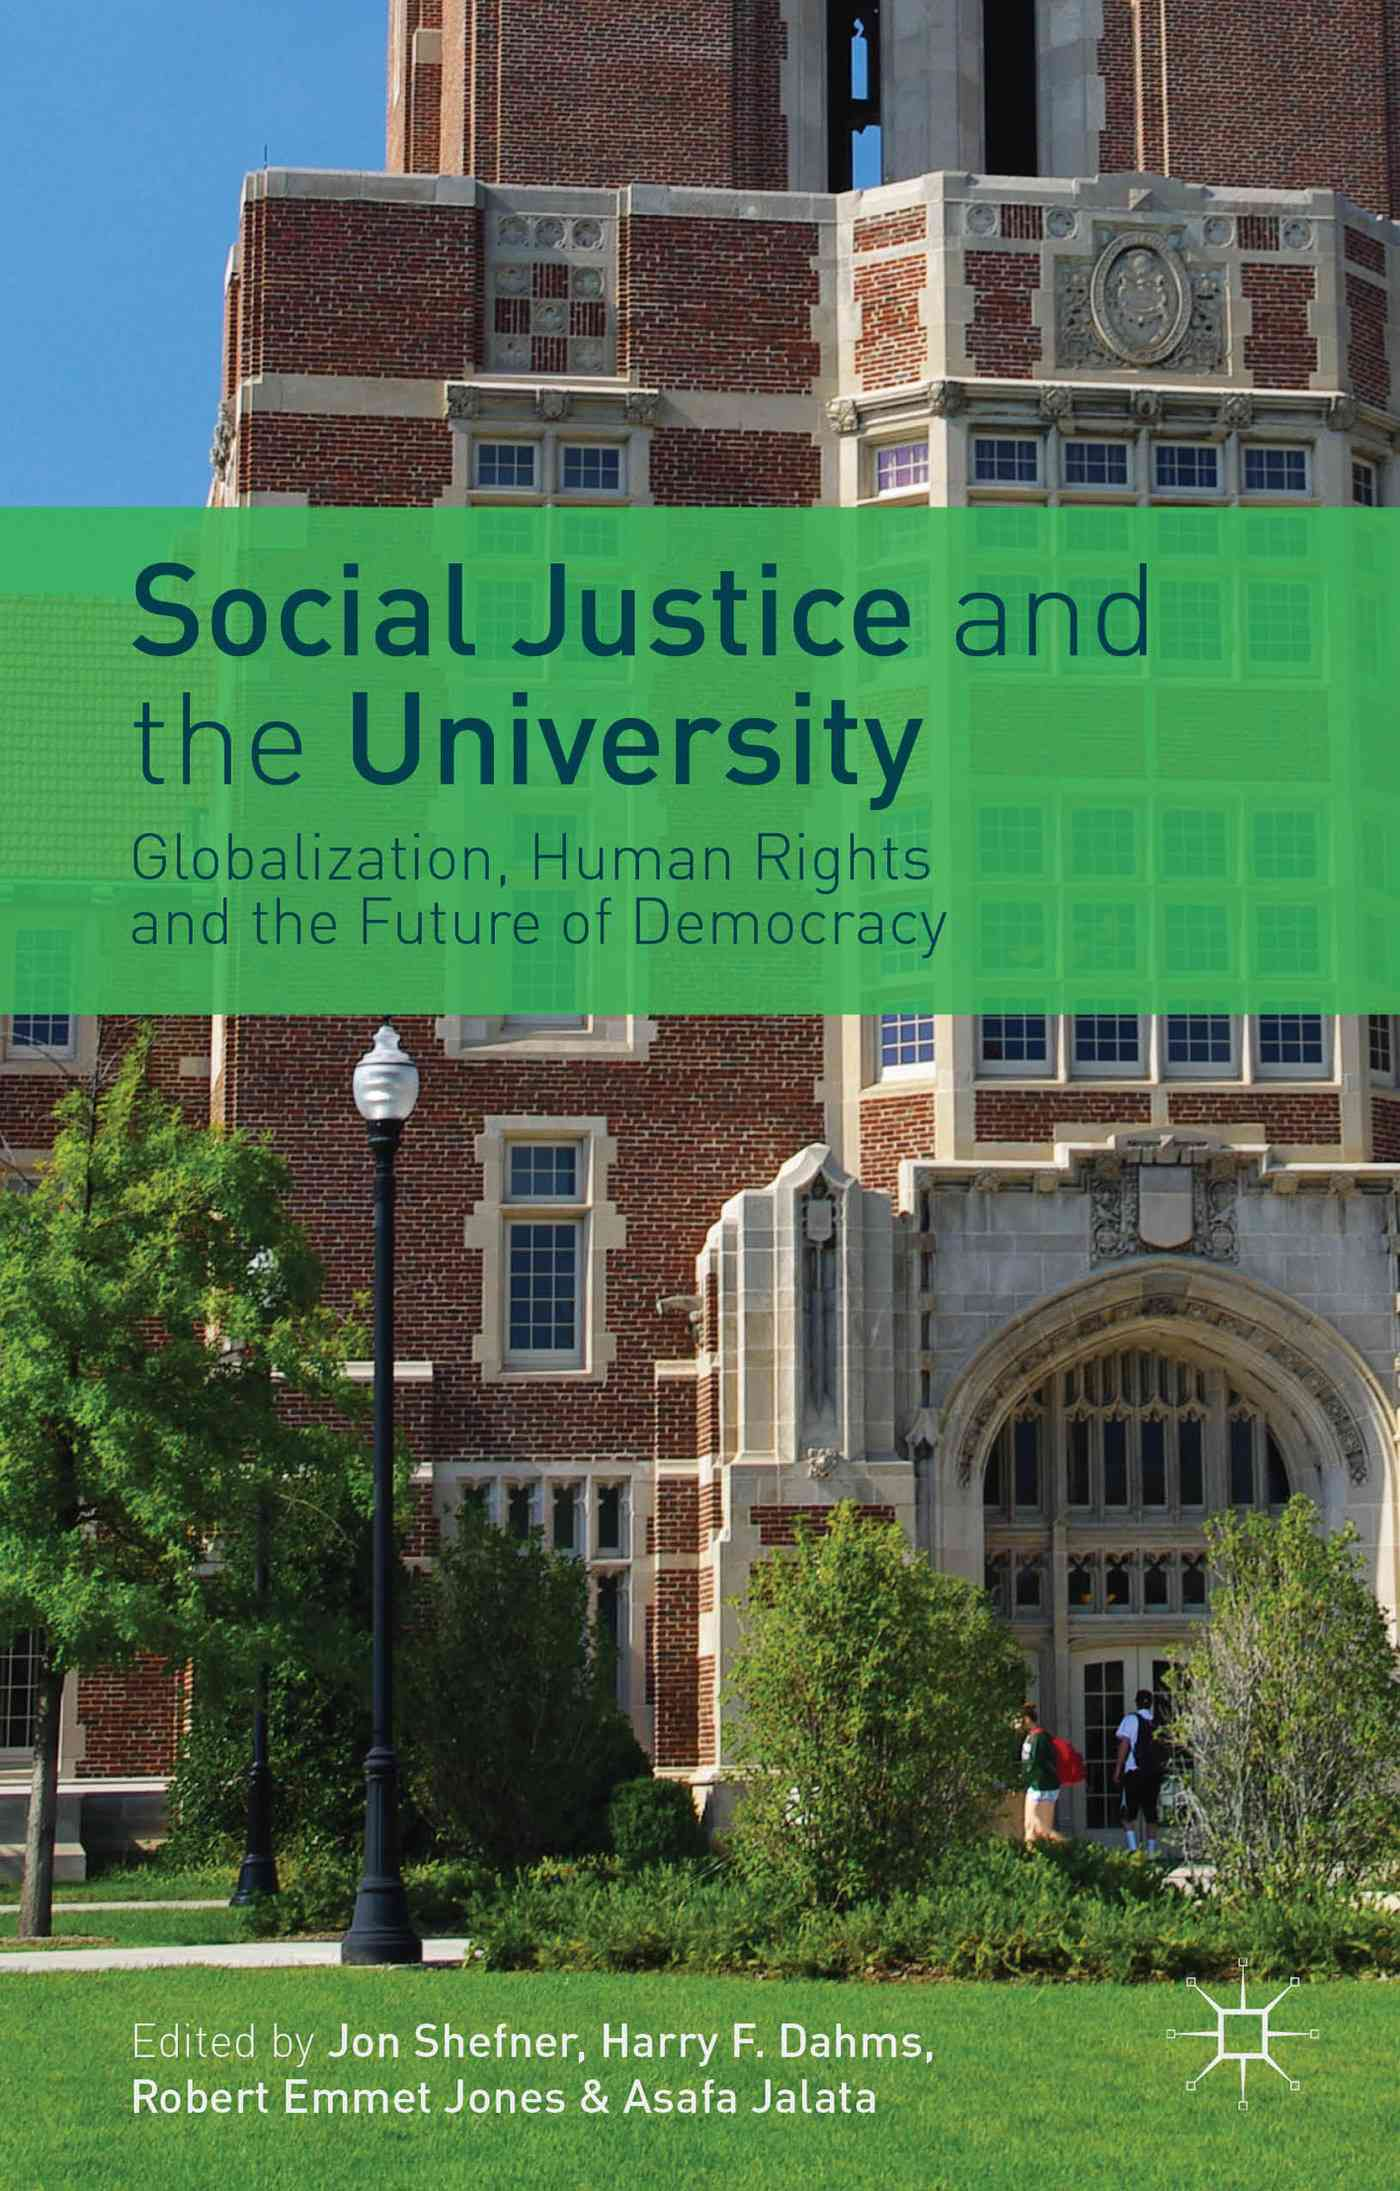 Social Justice and the University By Shefner, Jon (EDT)/ Dahms, Harry F. (EDT)/ Jones, Robert Emmet (EDT)/ Jalata, Asafa (EDT)